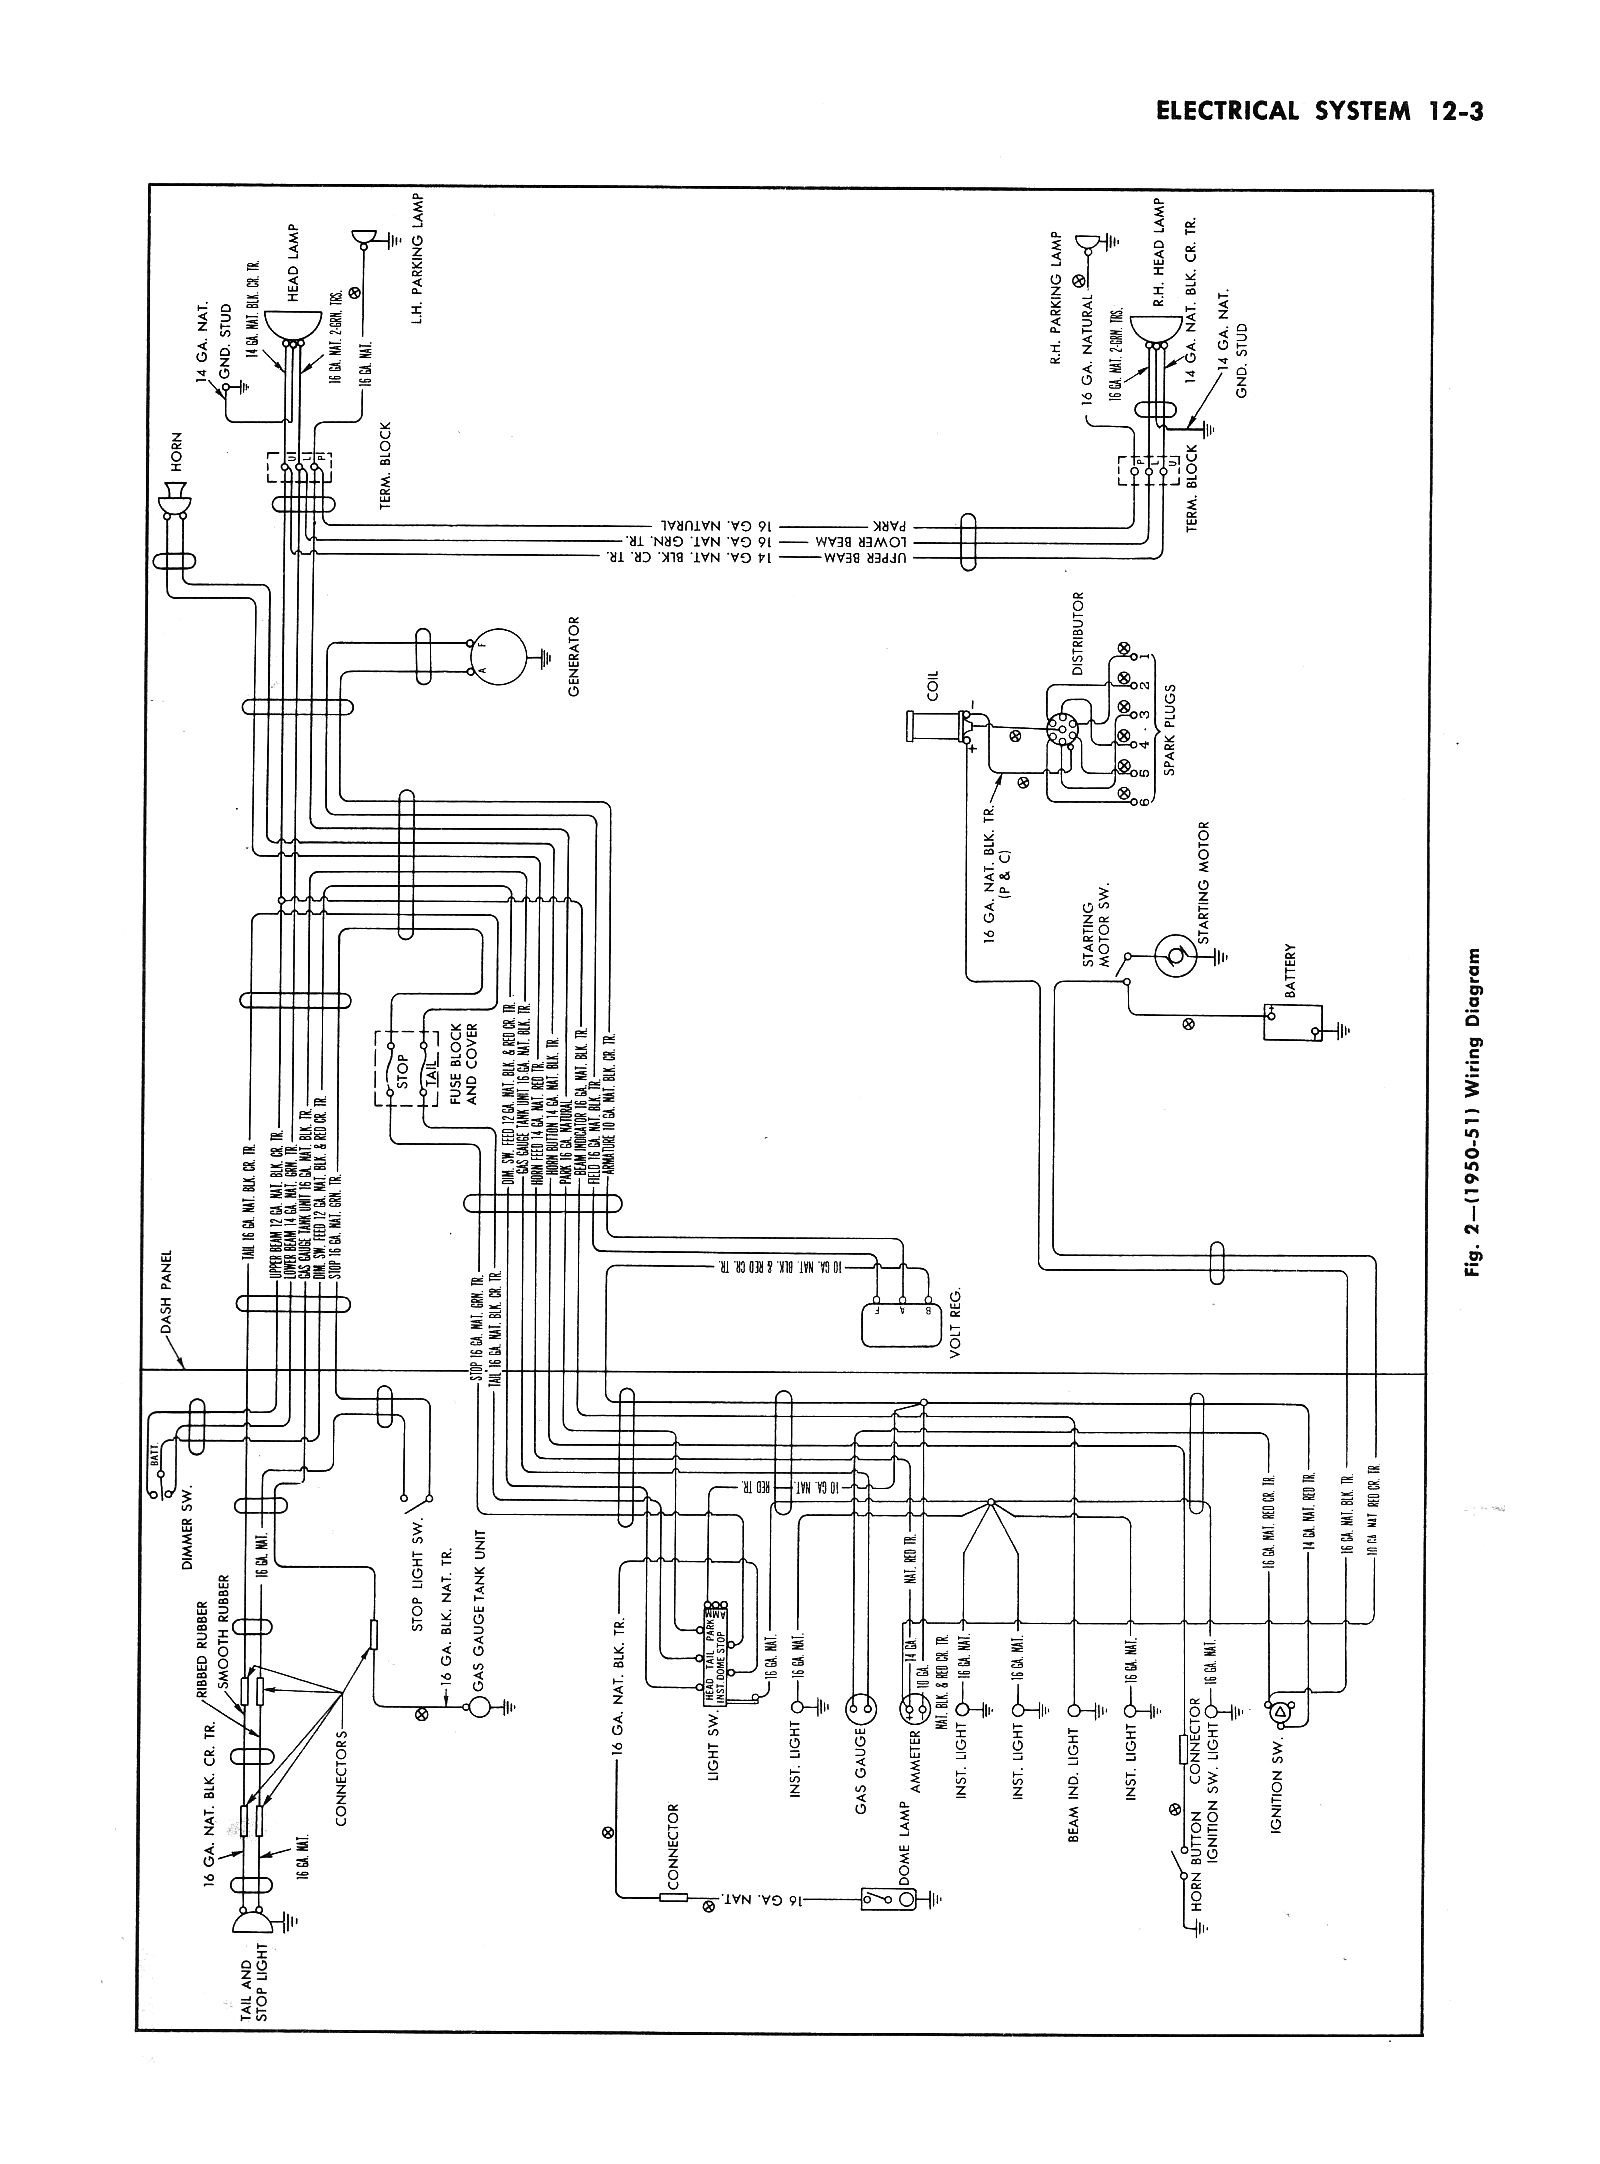 Chevrolet Wiring Colors Wiring Diagram Yer